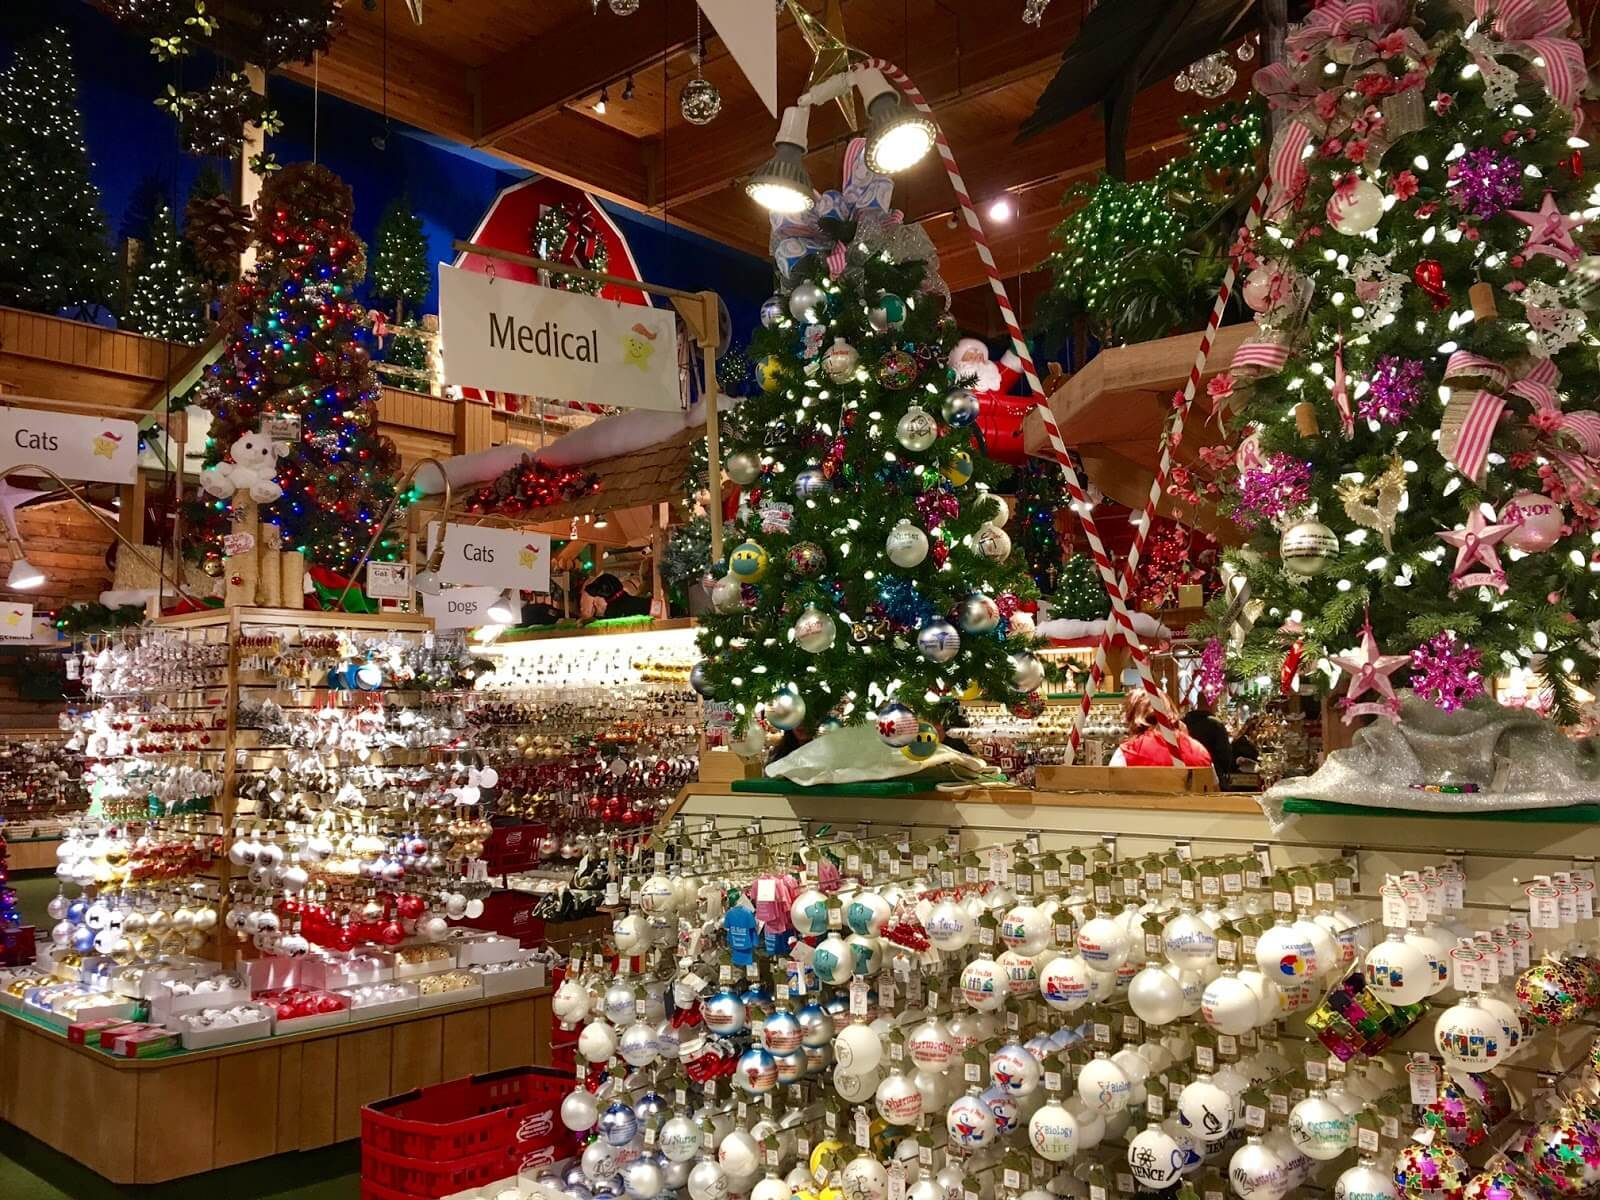 Best Means Of Creating A Holiday Atmosphere With Christmas Store Decoration Storing Christmas Decorations Fun Christmas Decorations Christmas Store